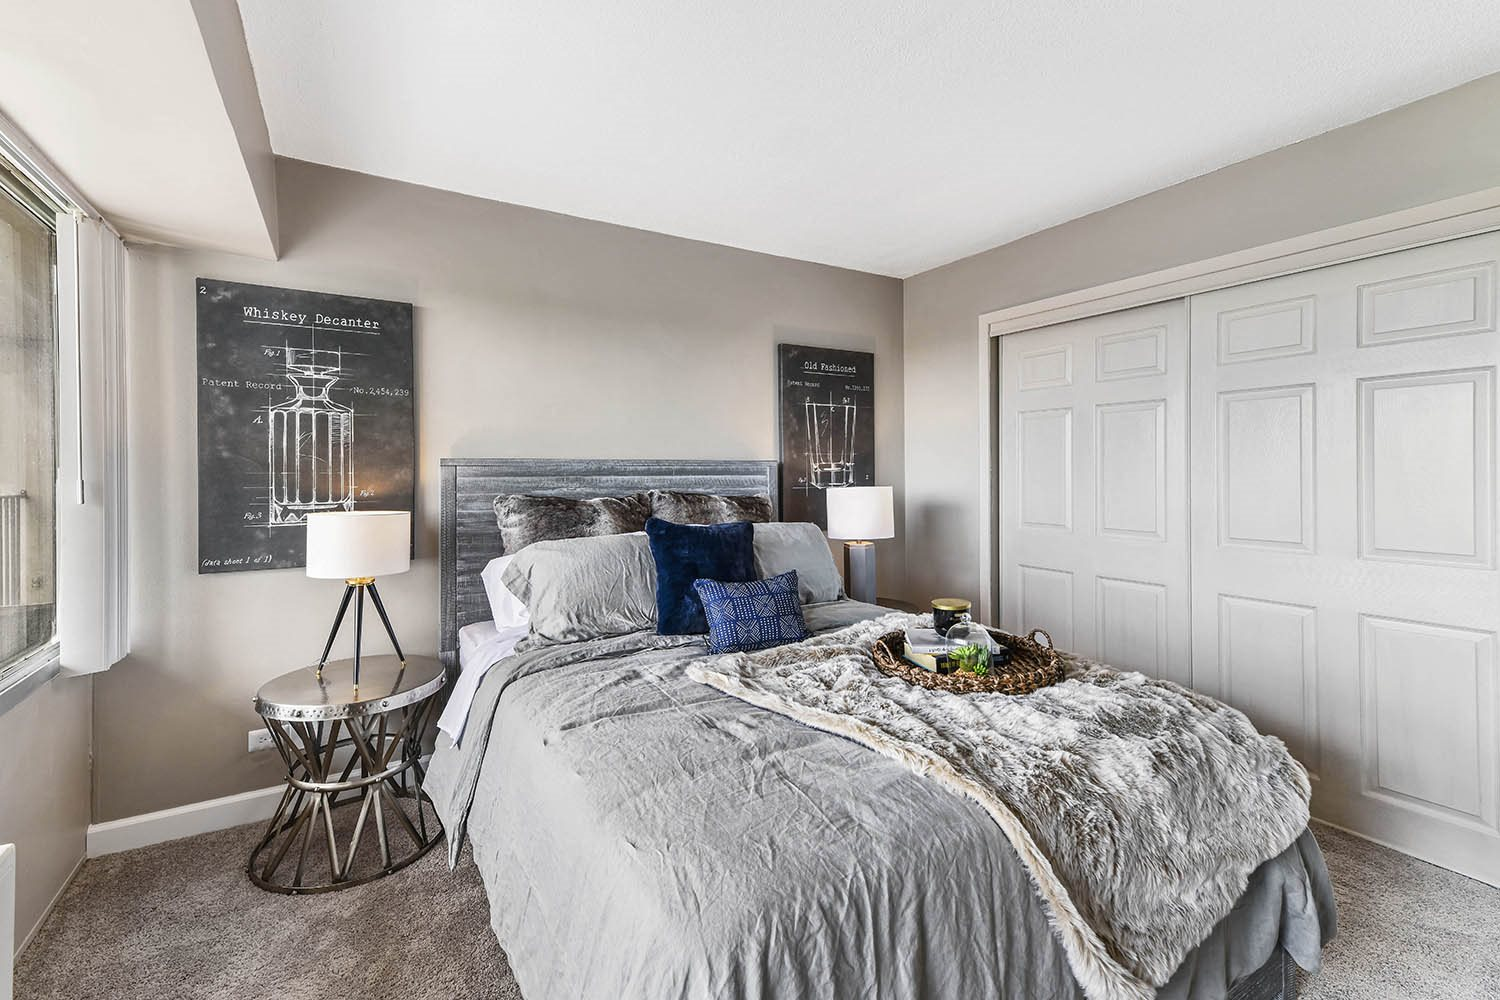 King-Sized Bedrooms at CityView on Meridian, Indiana